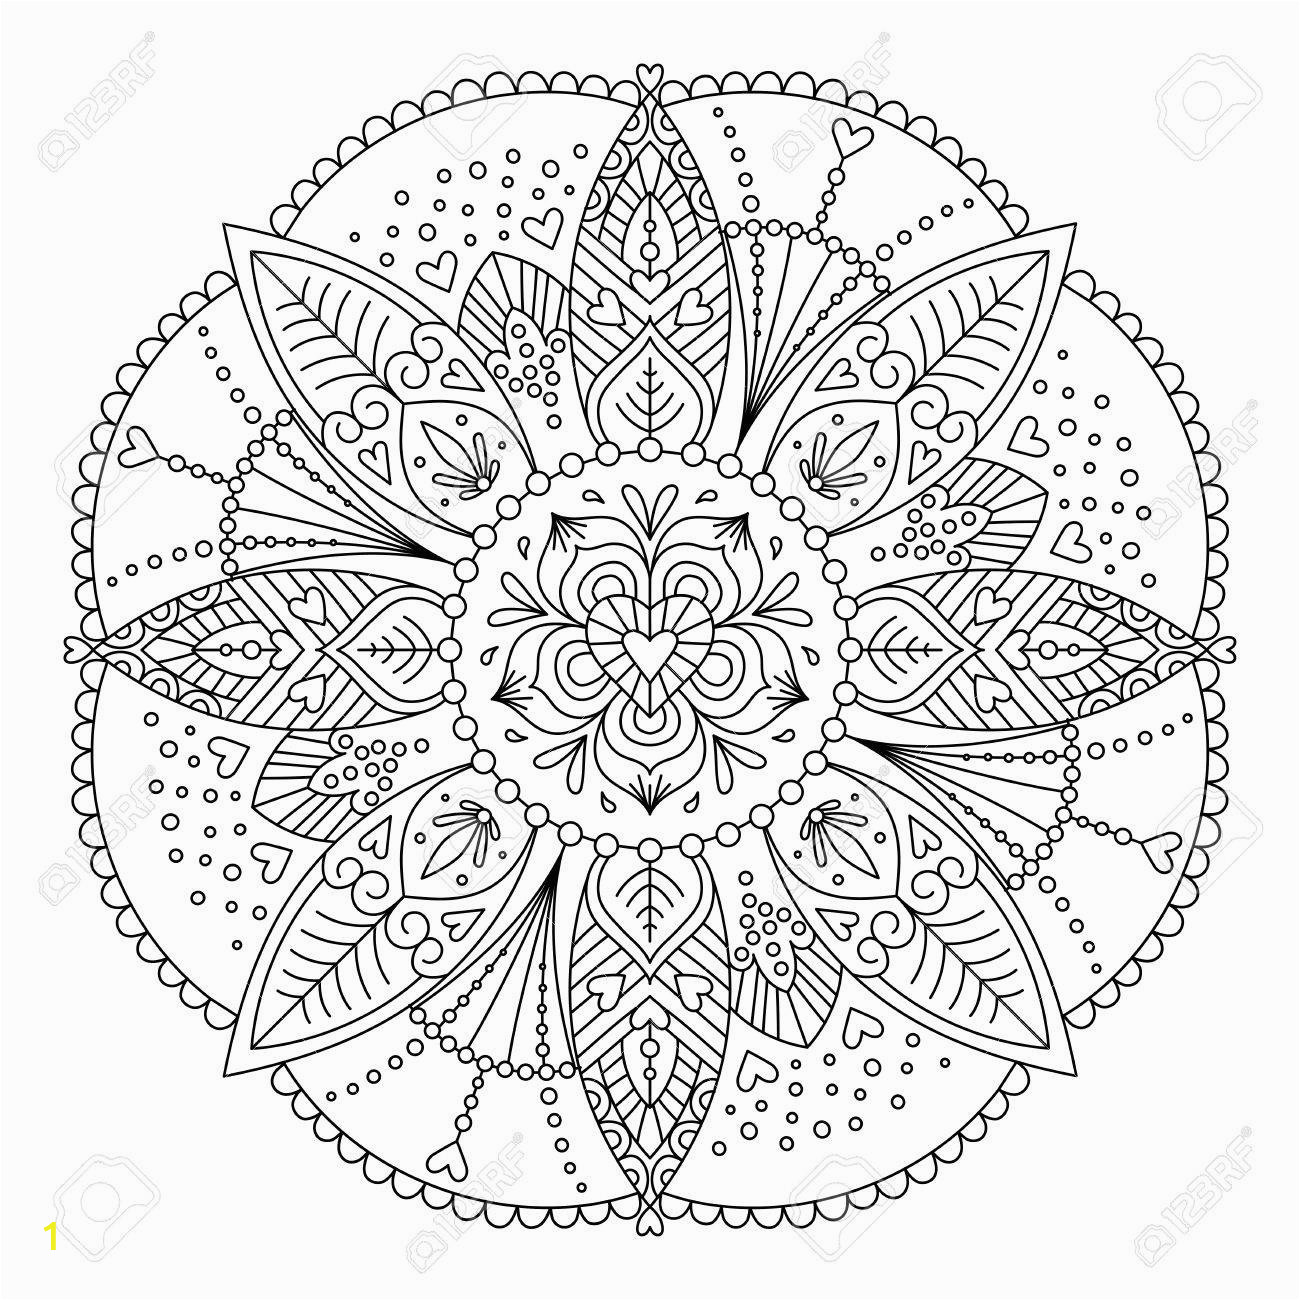 adult coloring page black and white for relaxation